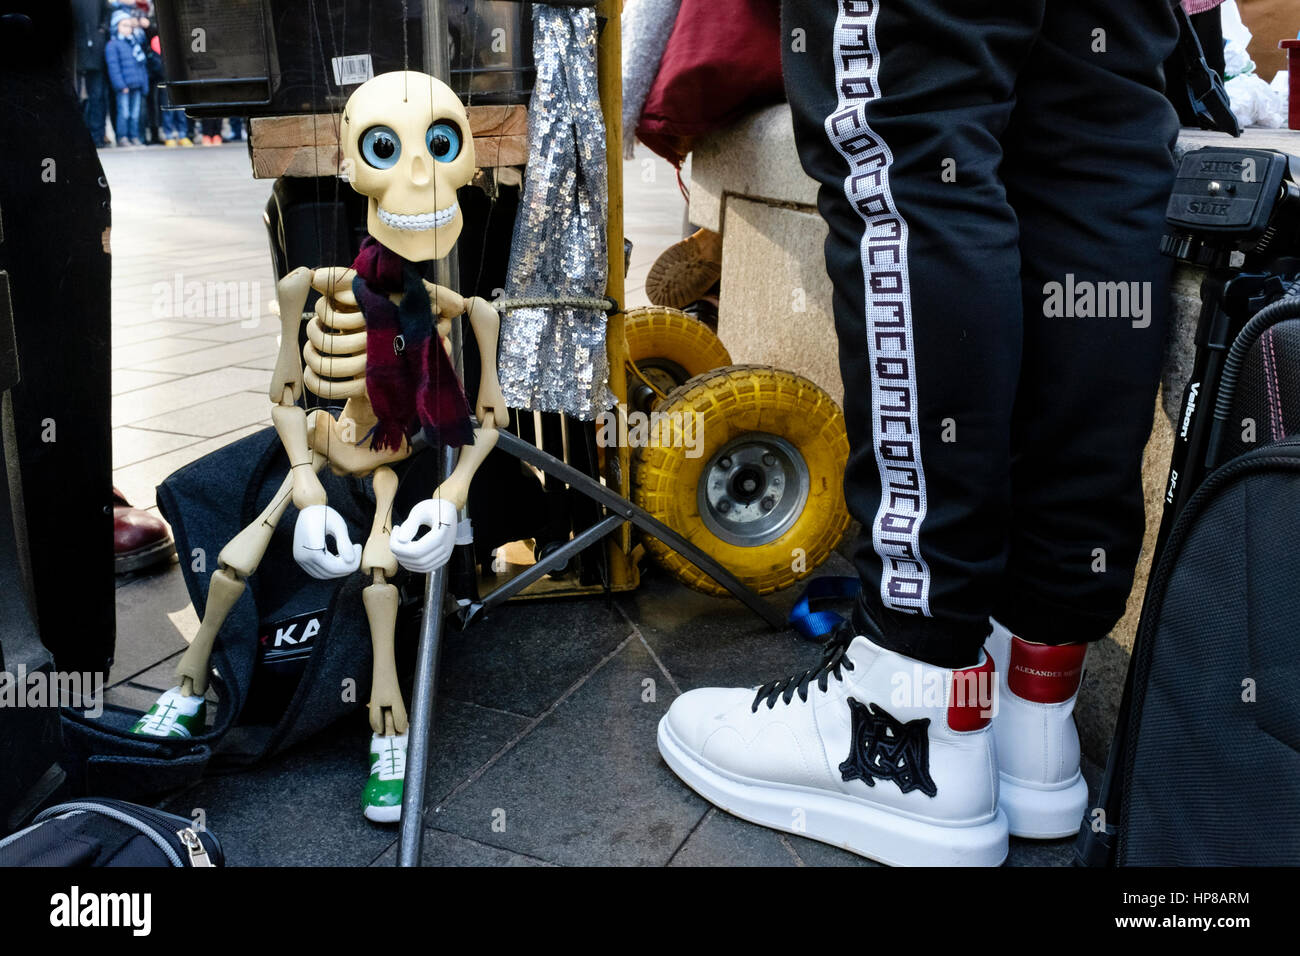 Puppeteer prepares for street performance in Leicester Square, London - Stock Image